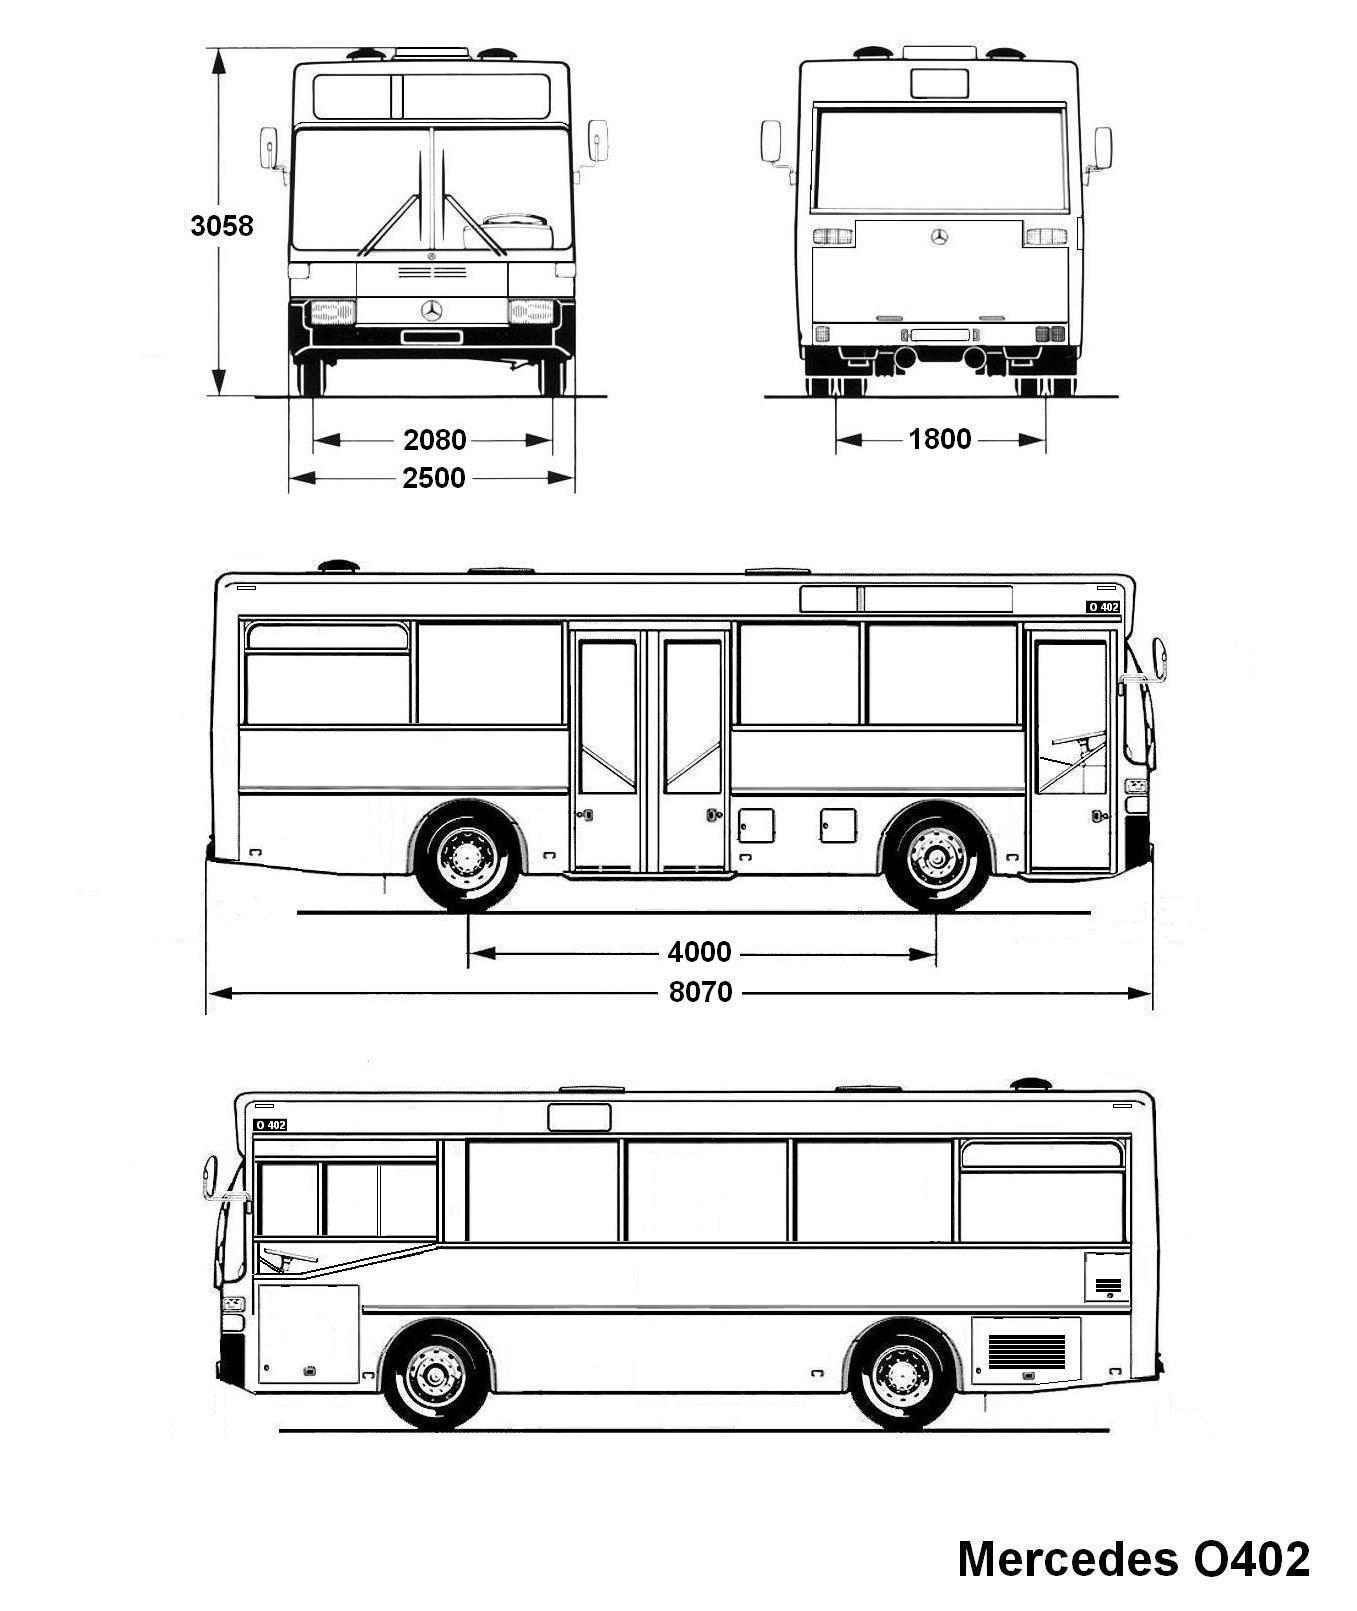 Mercedes-Benz O402 blueprint